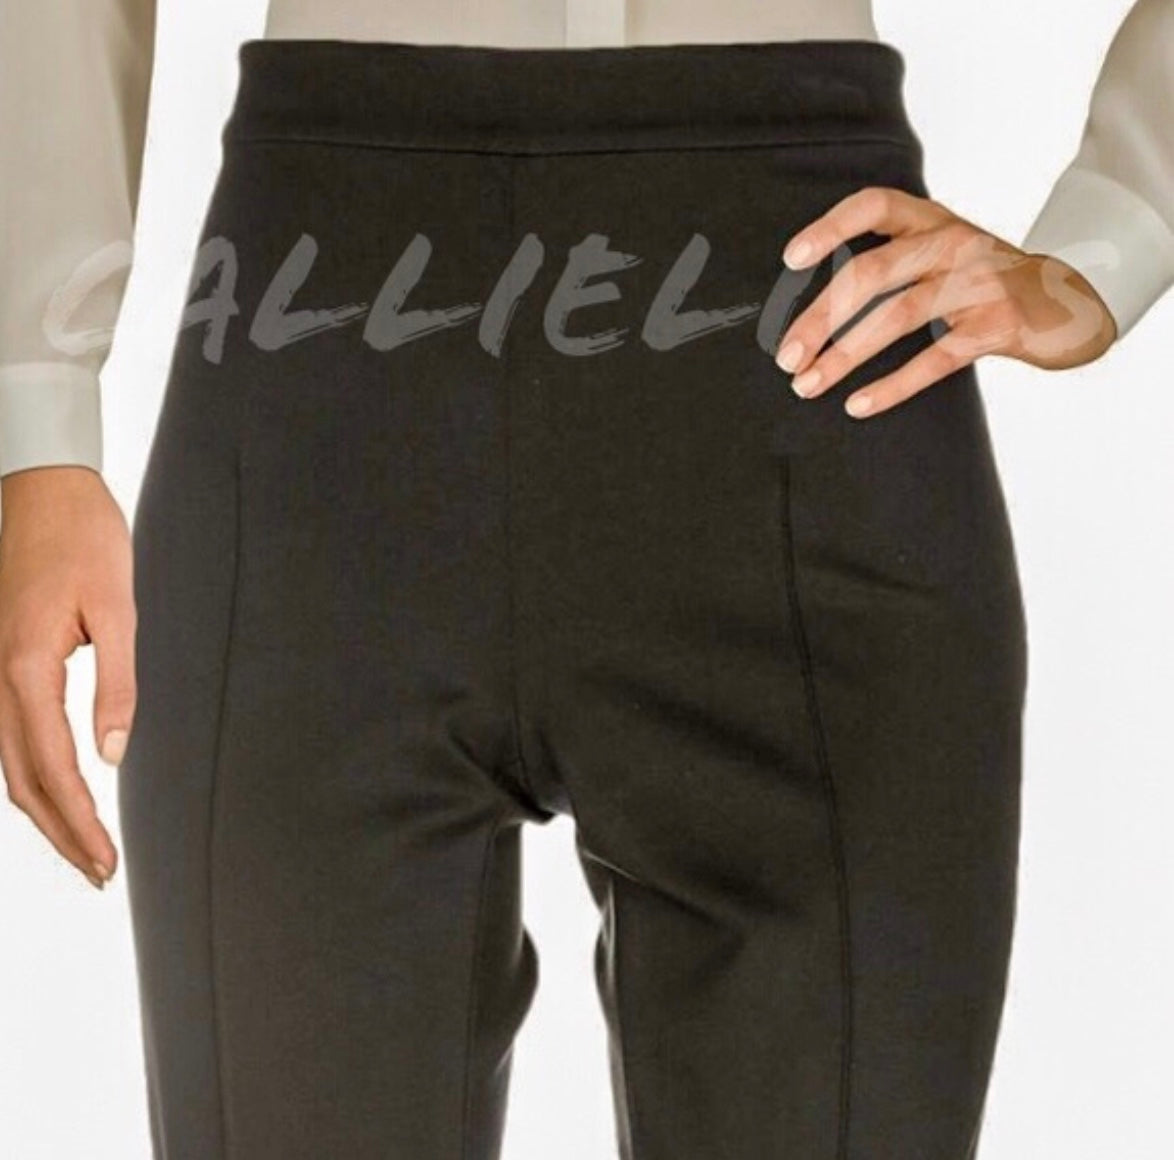 Elaine Ponte: Moschino Cheap Chic Black Work Pants